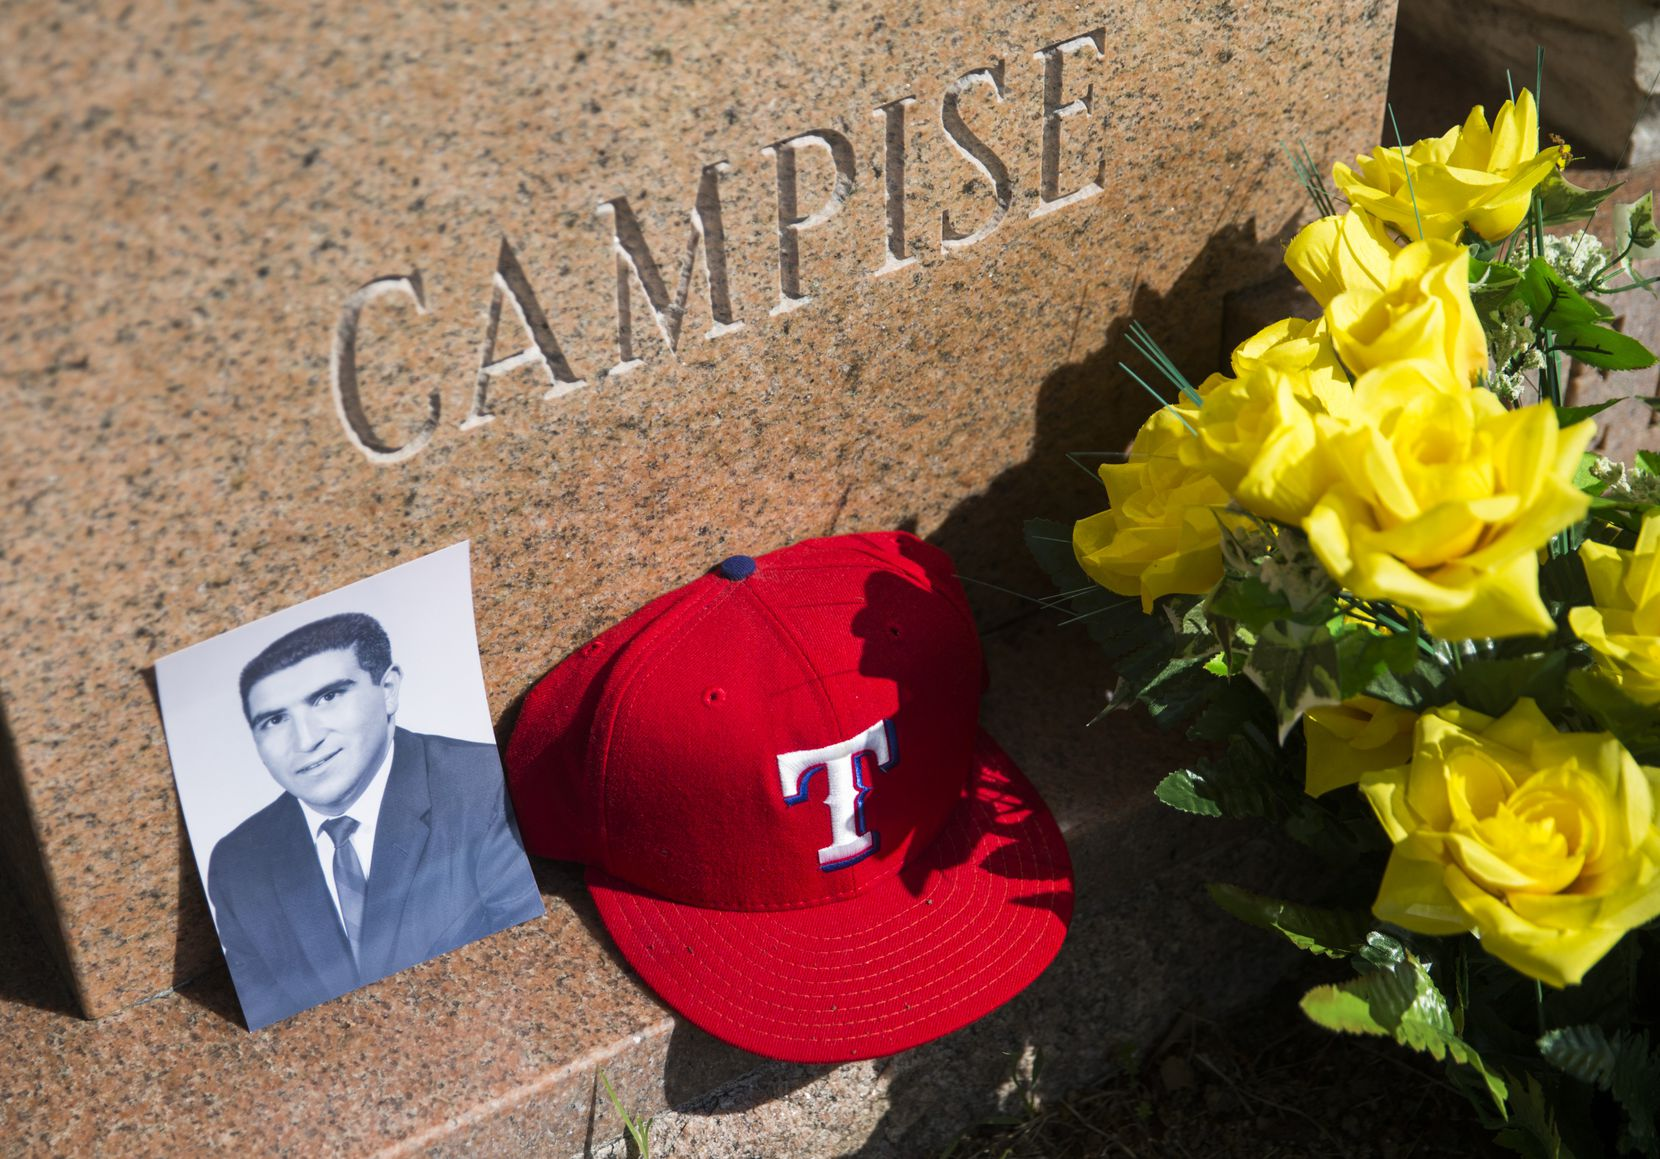 An old portrait of Frank Campise and one of his Texas Rangers hats were placed at his grave for a photo shoot at Calvary Hill Cemetery in Dallas. He died at age 80 on March 22.